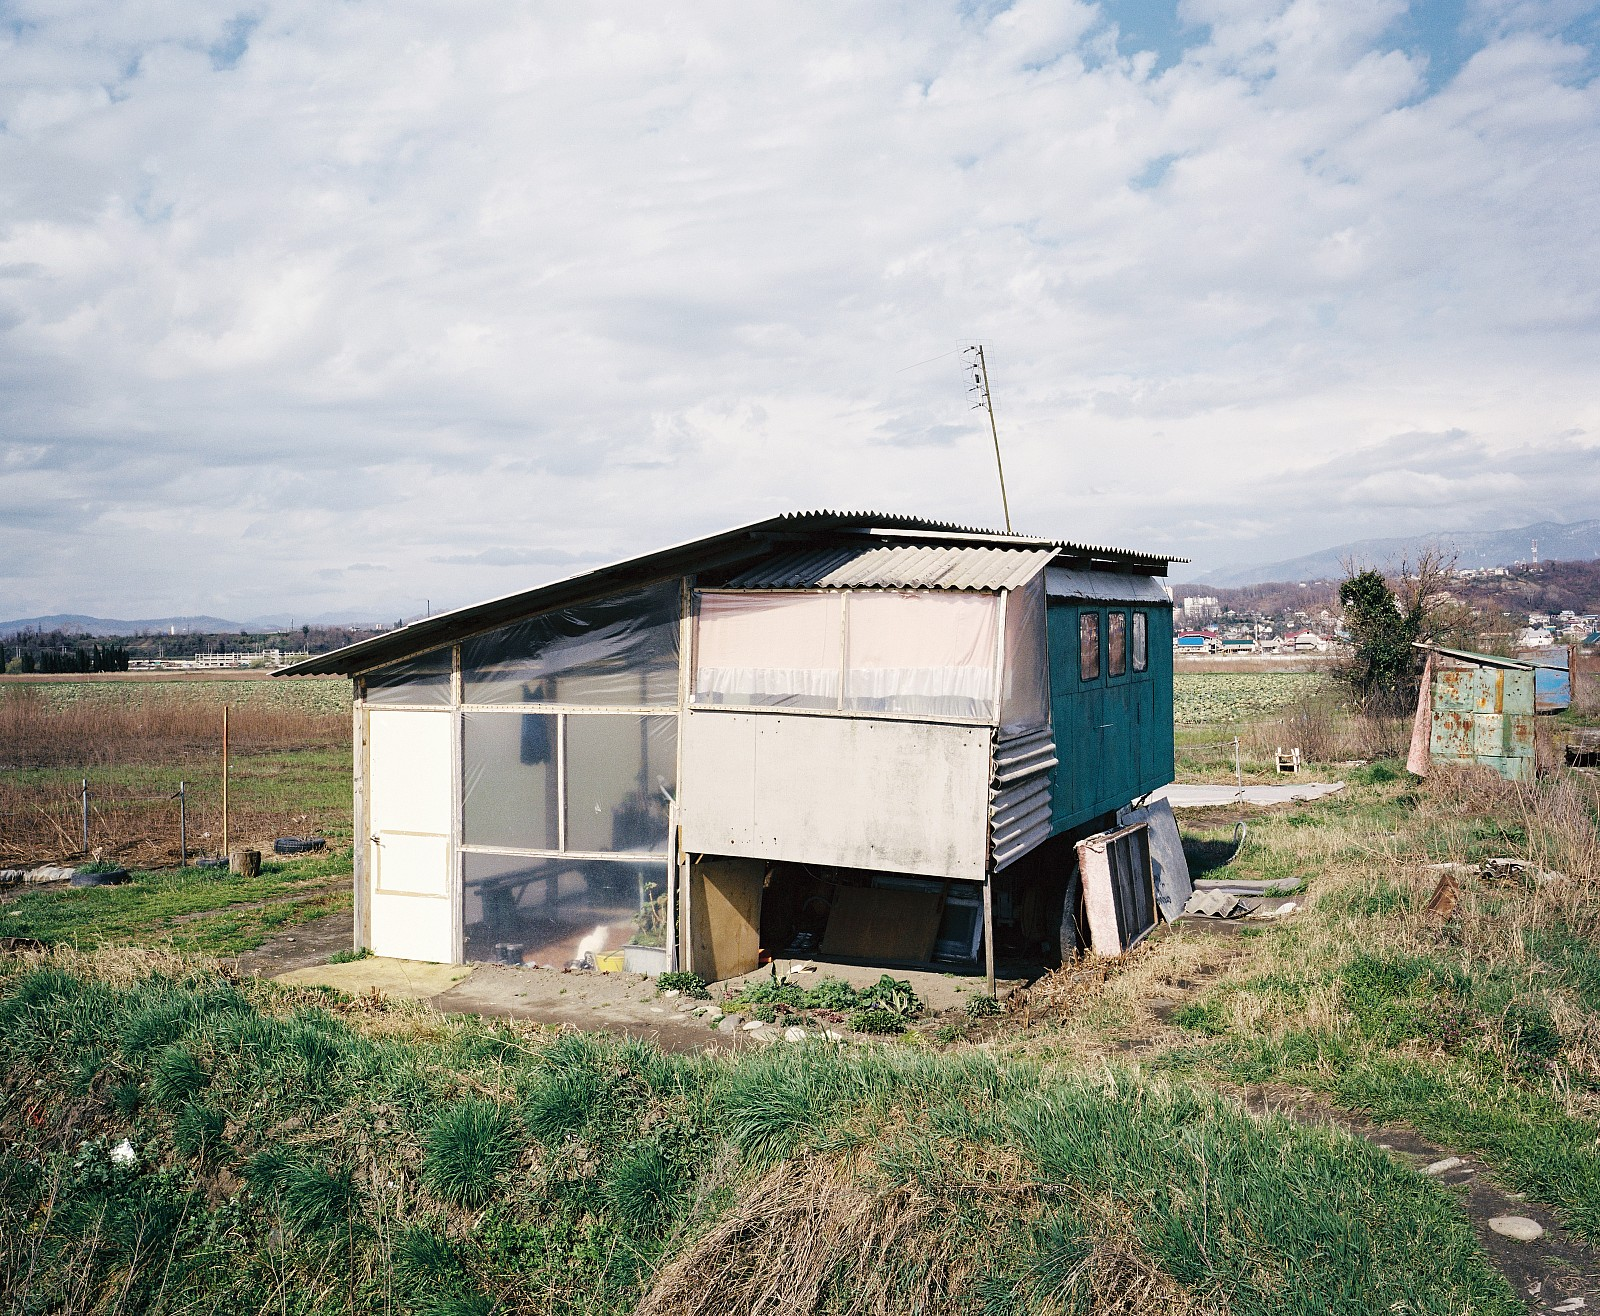 In 2009, state farm 'Russia' was fenced off with a big blue, Olympic fence. Refugees from Abkhazia were allowed to temporarily farm the land. They lived in this caravan.